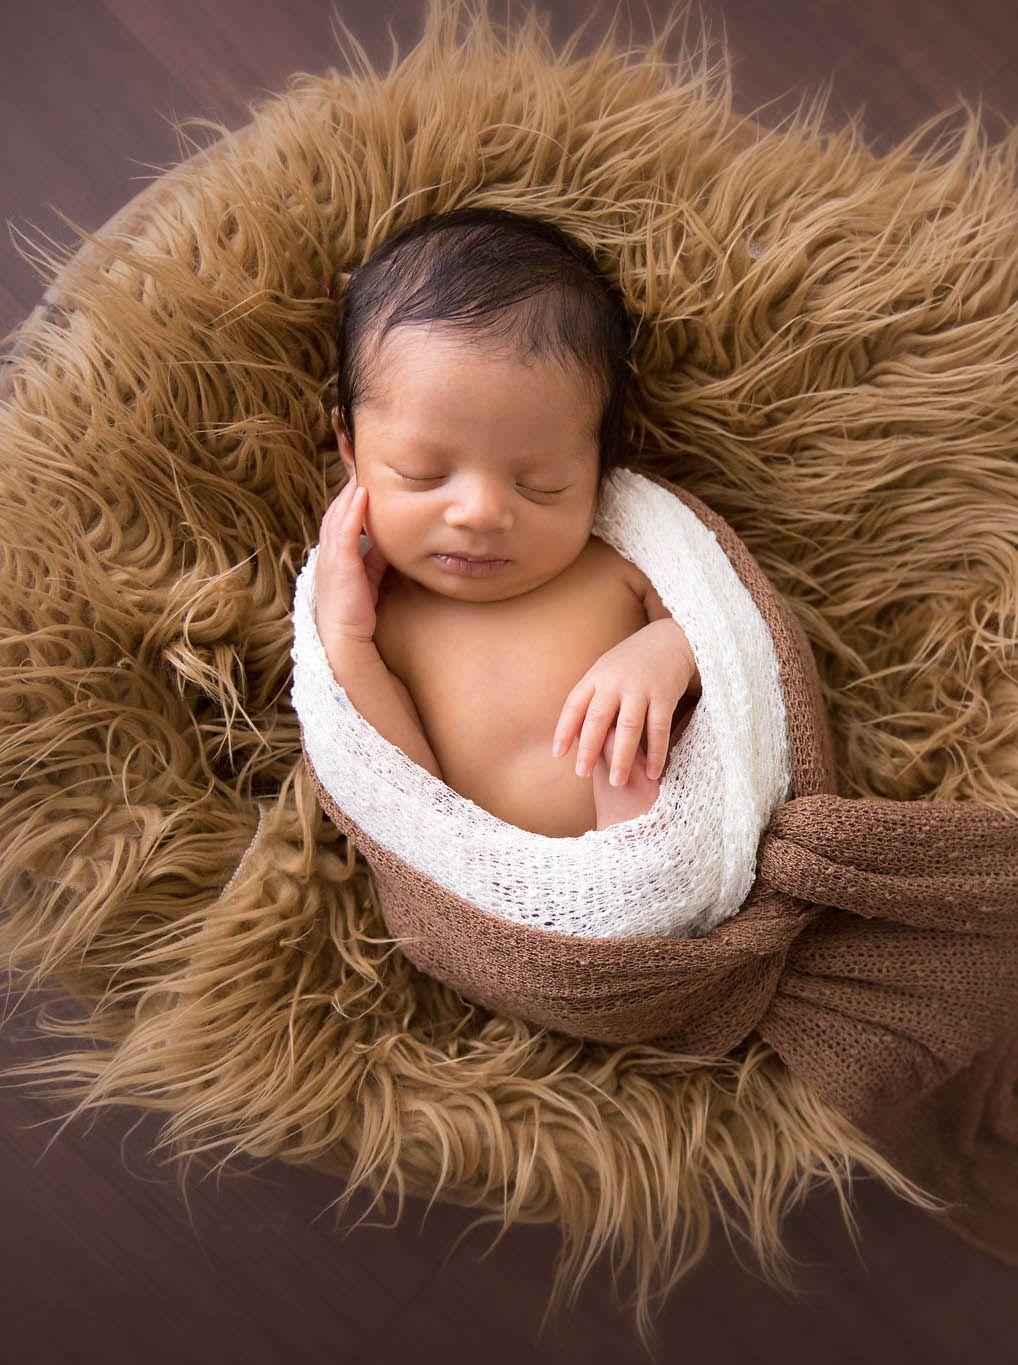 New born baby photoshoot in a basket